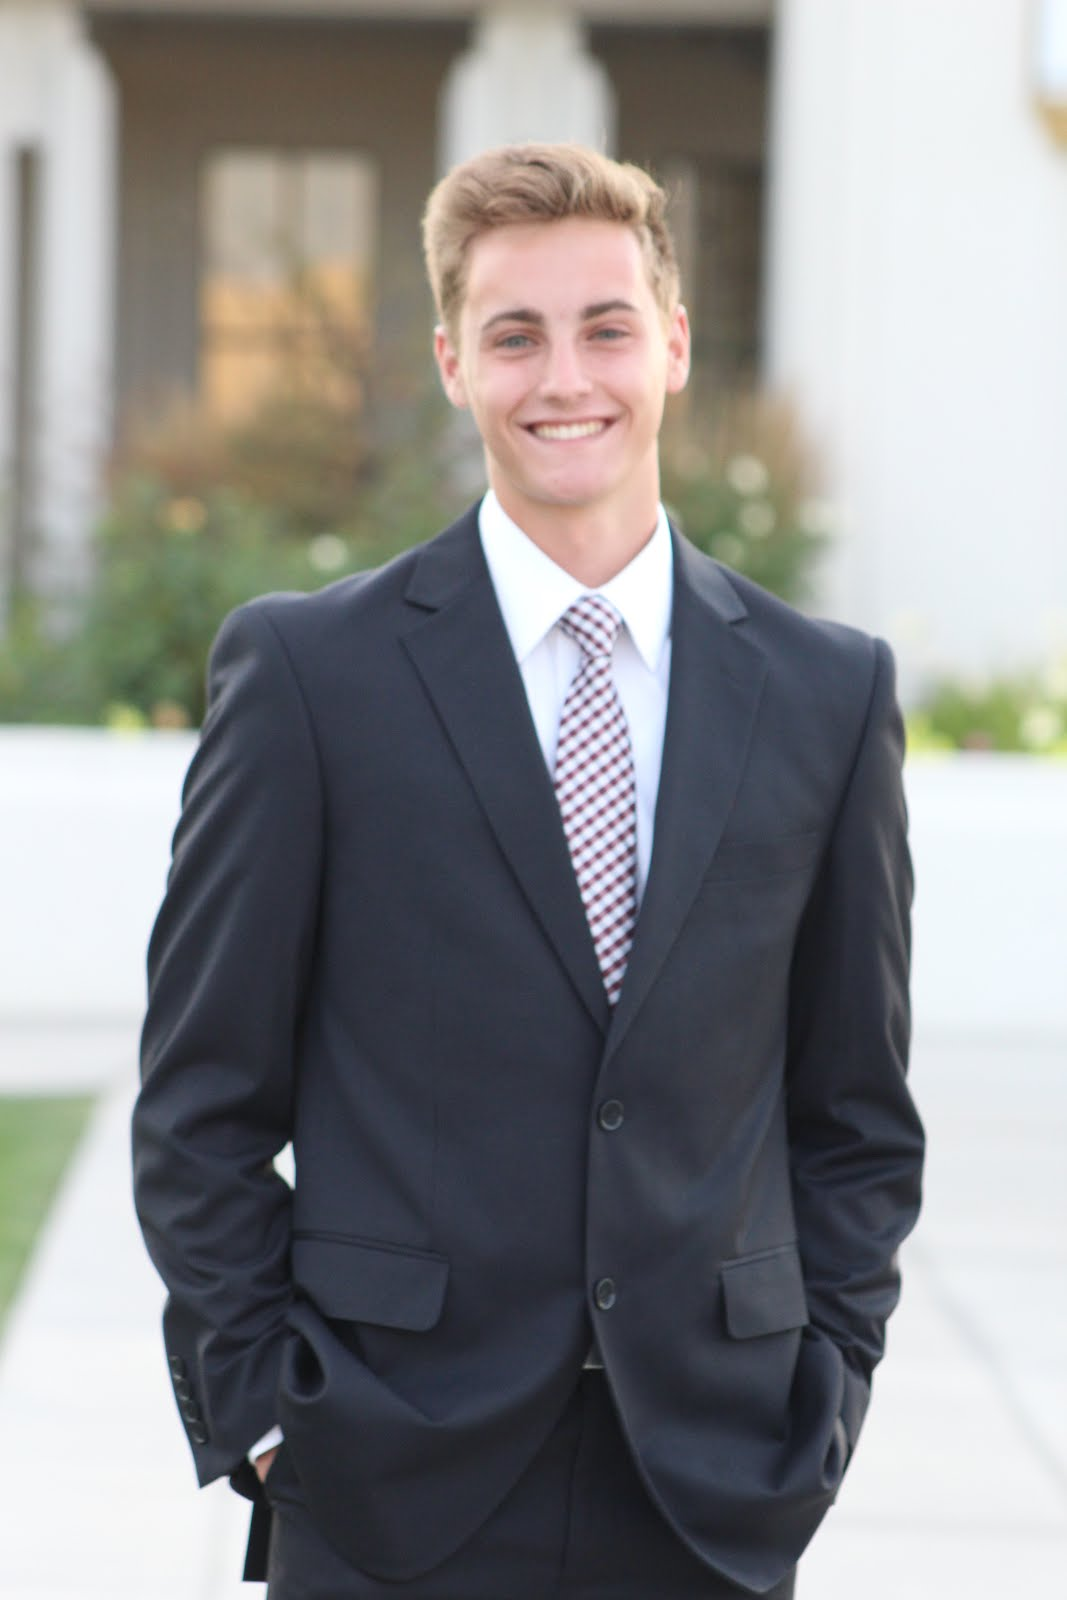 Elder Brett Hepworth